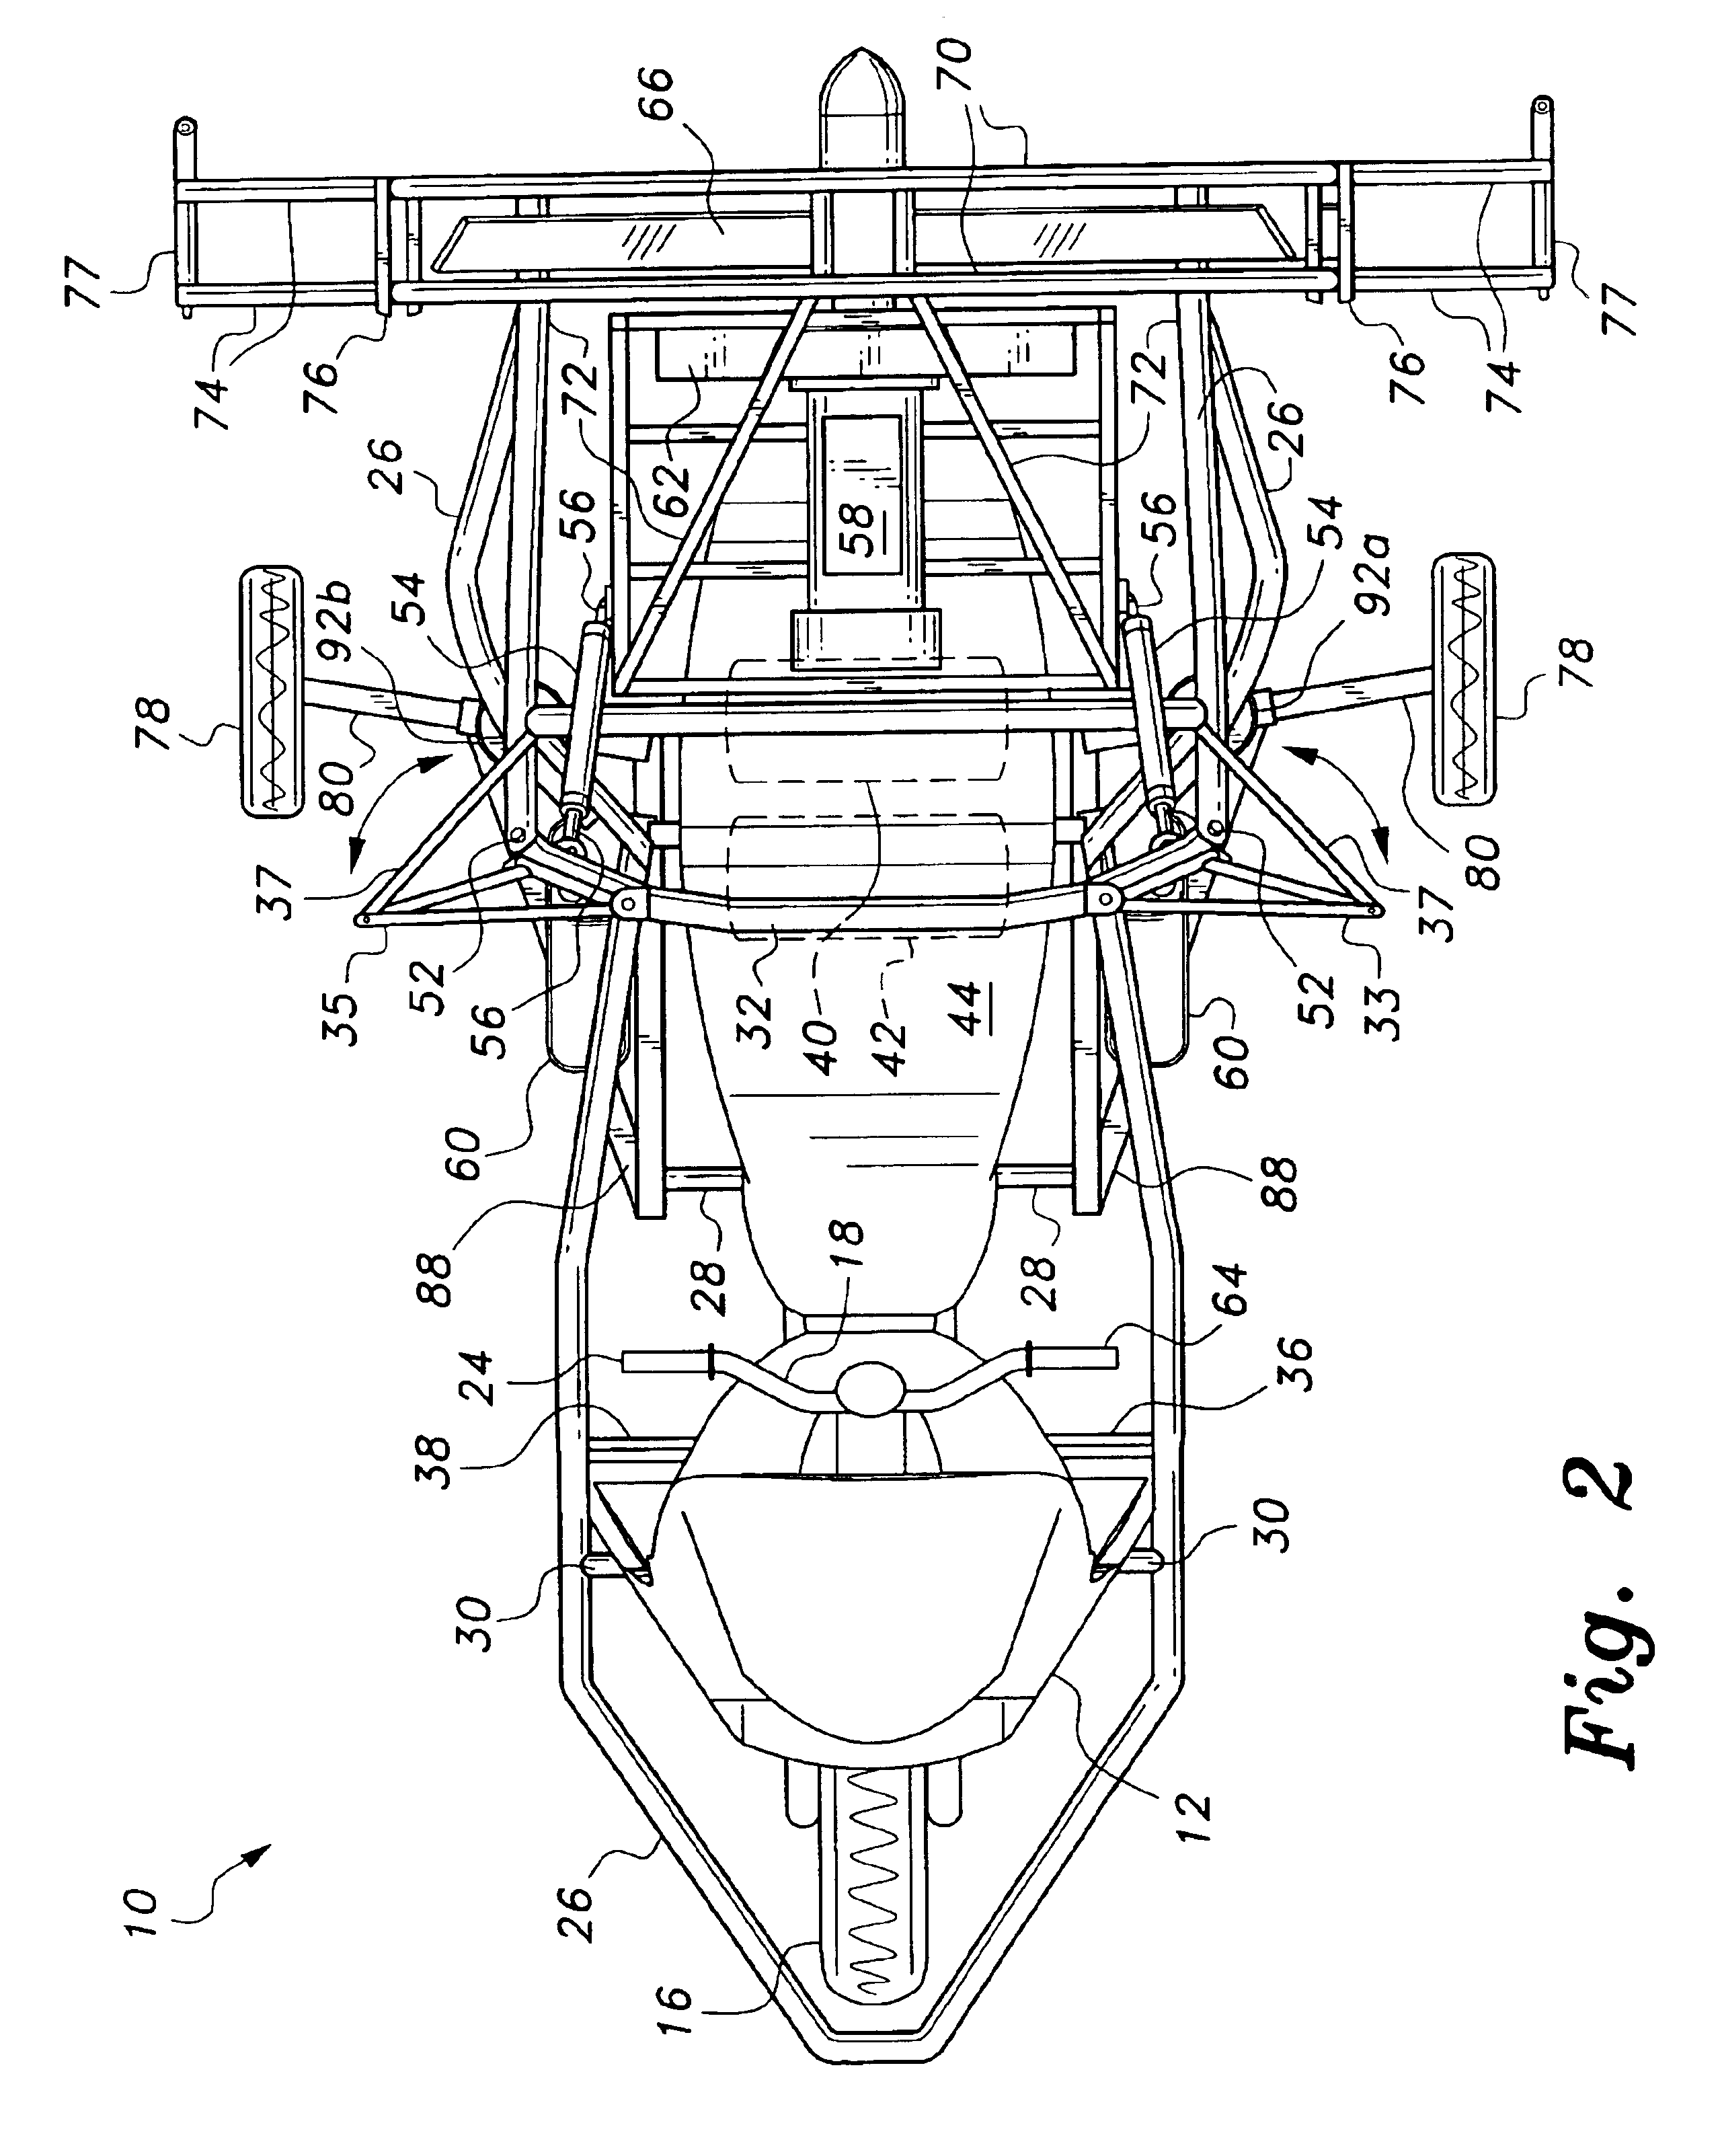 patent us6877690 - combination powered parachute and motorcycle